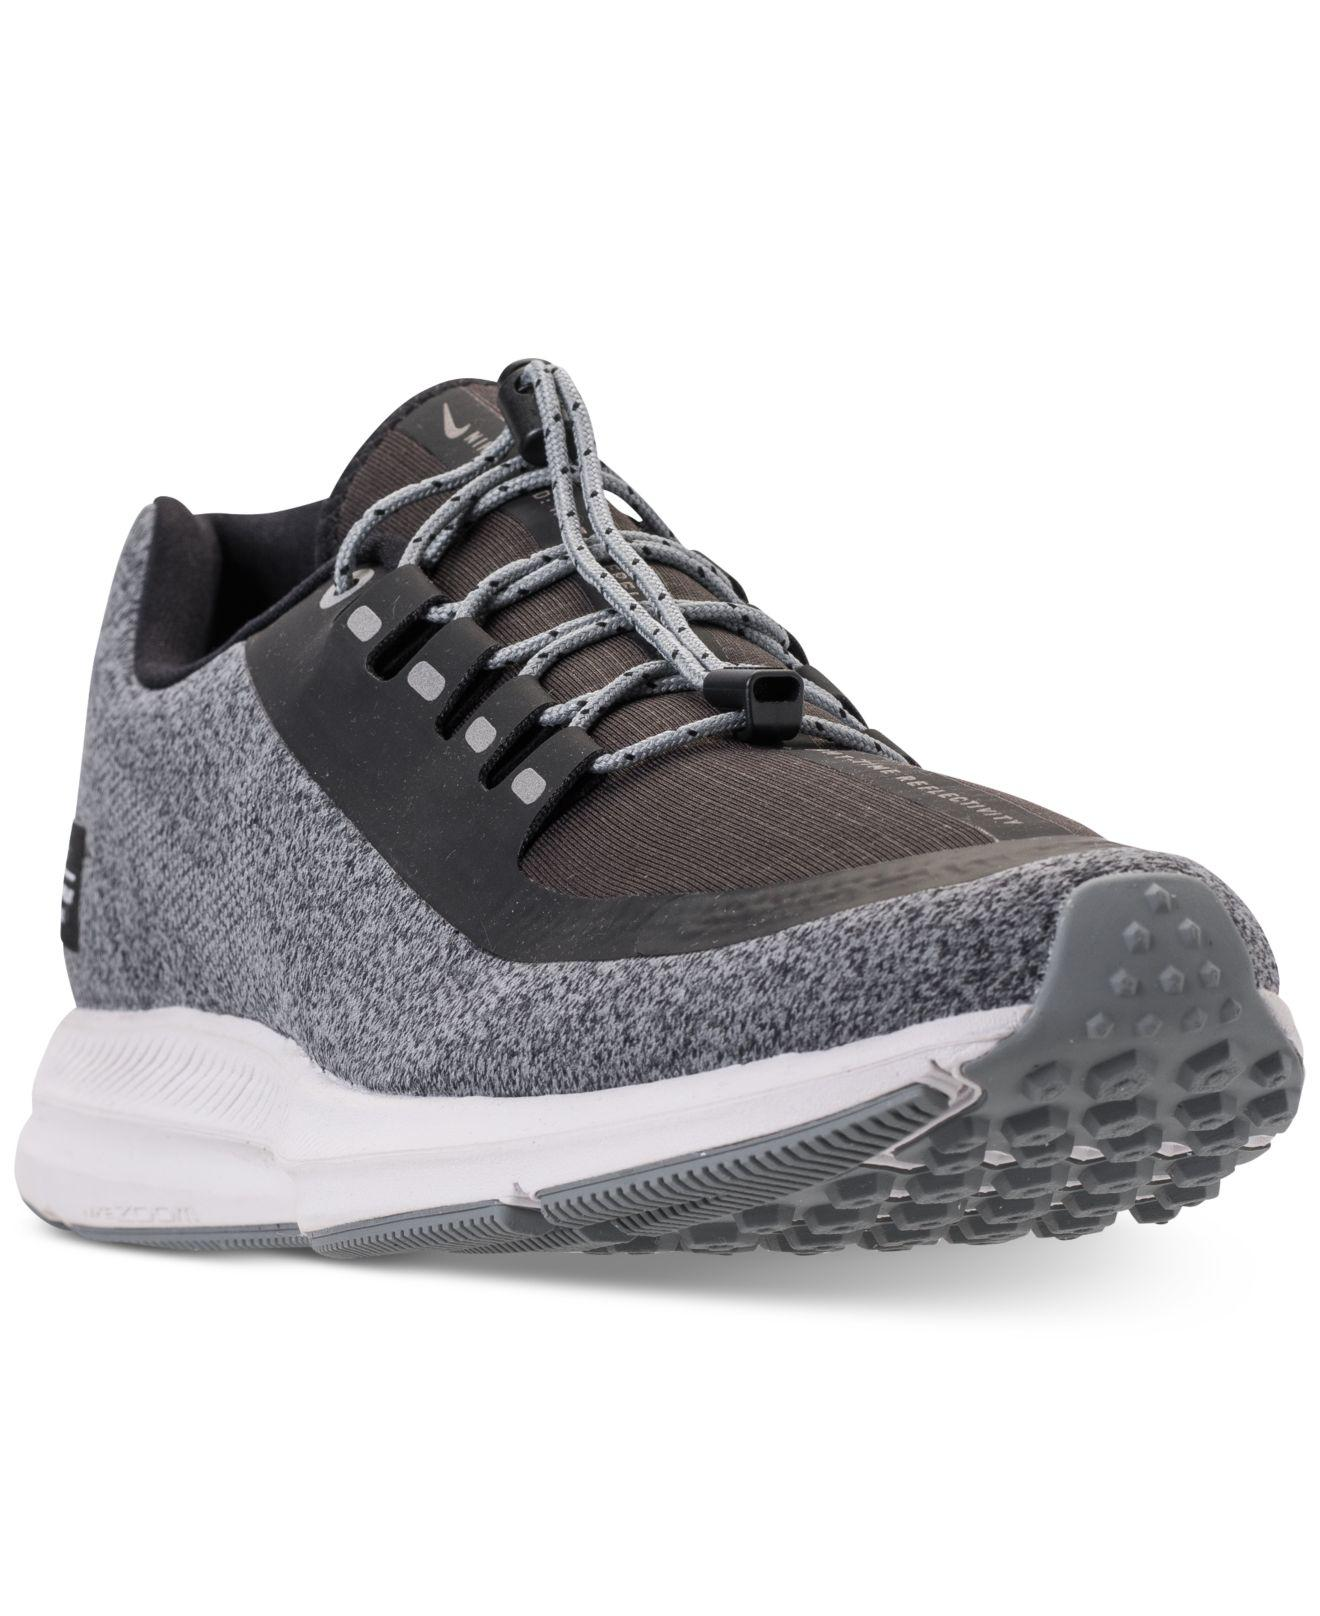 c5cb121ffe015 Lyst - Nike Air Zoom Winflo 5 Shield Running Sneakers From Finish ...